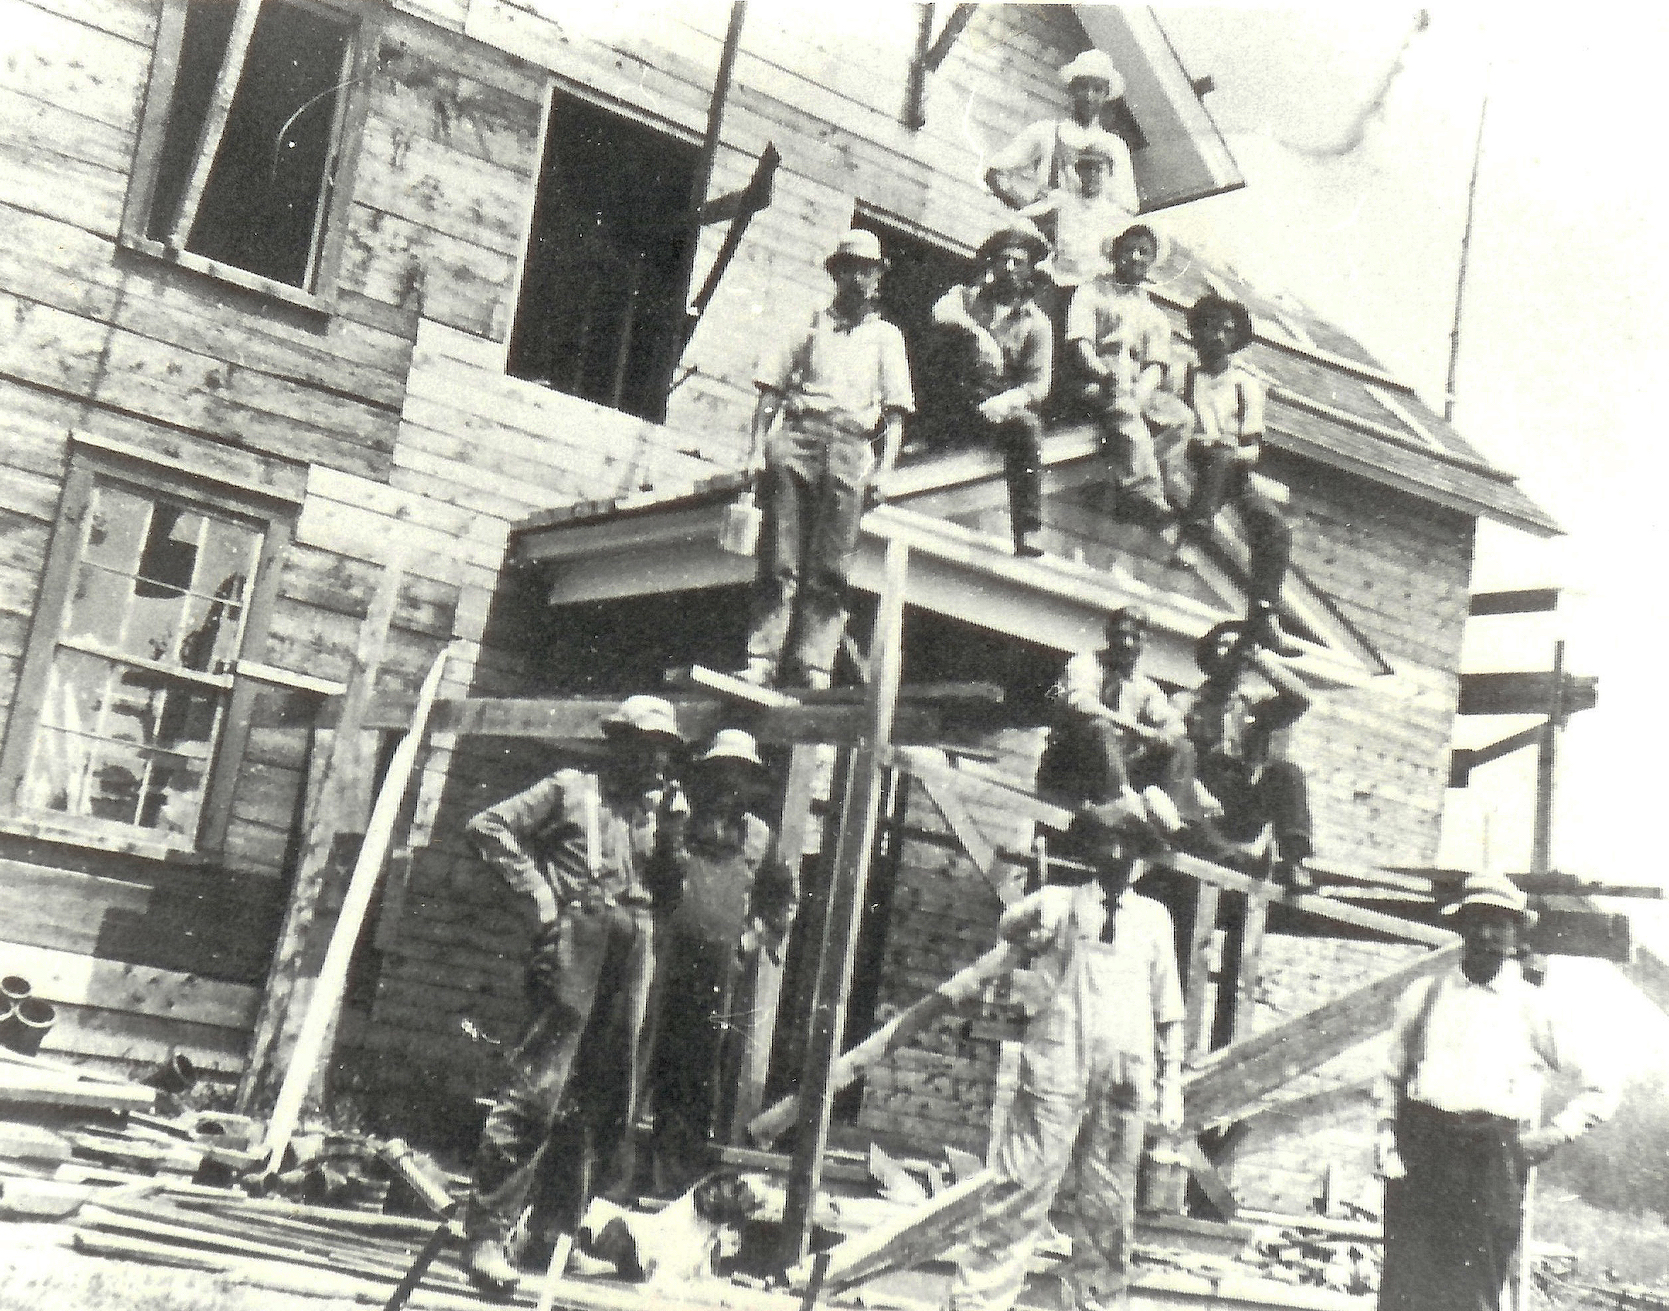 Norman Miner house being remodeled into Helenscourt [Photo, c.1919, courtesy of Gabrielle Drew]